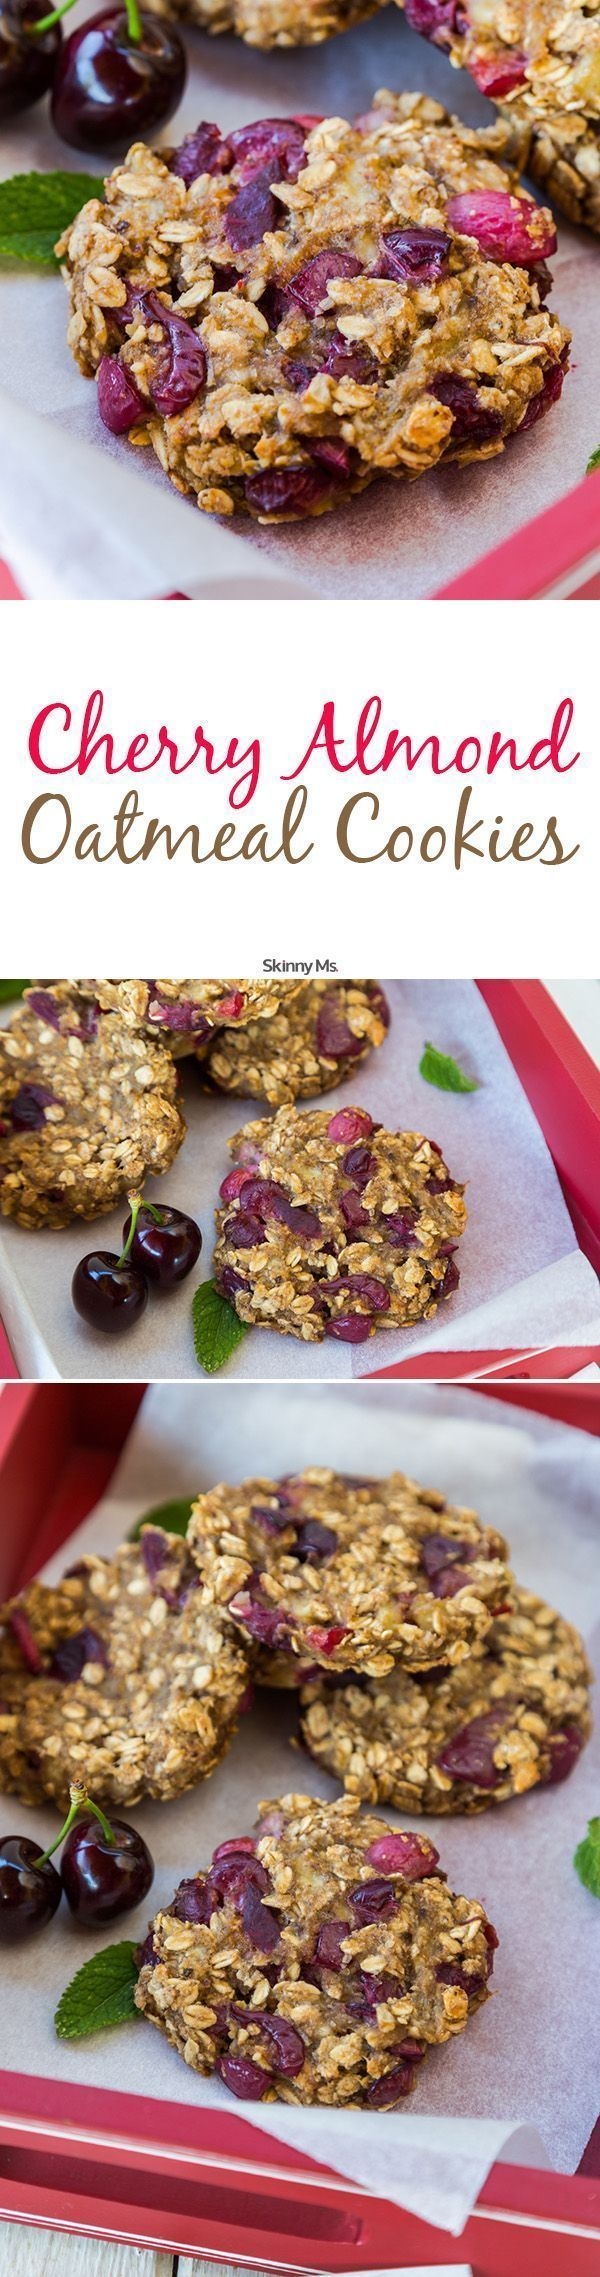 I LOVE this healthy cookie recipe for Cherry Almond Oatmeal Cookies    They are always a huge hit at my house   cookies